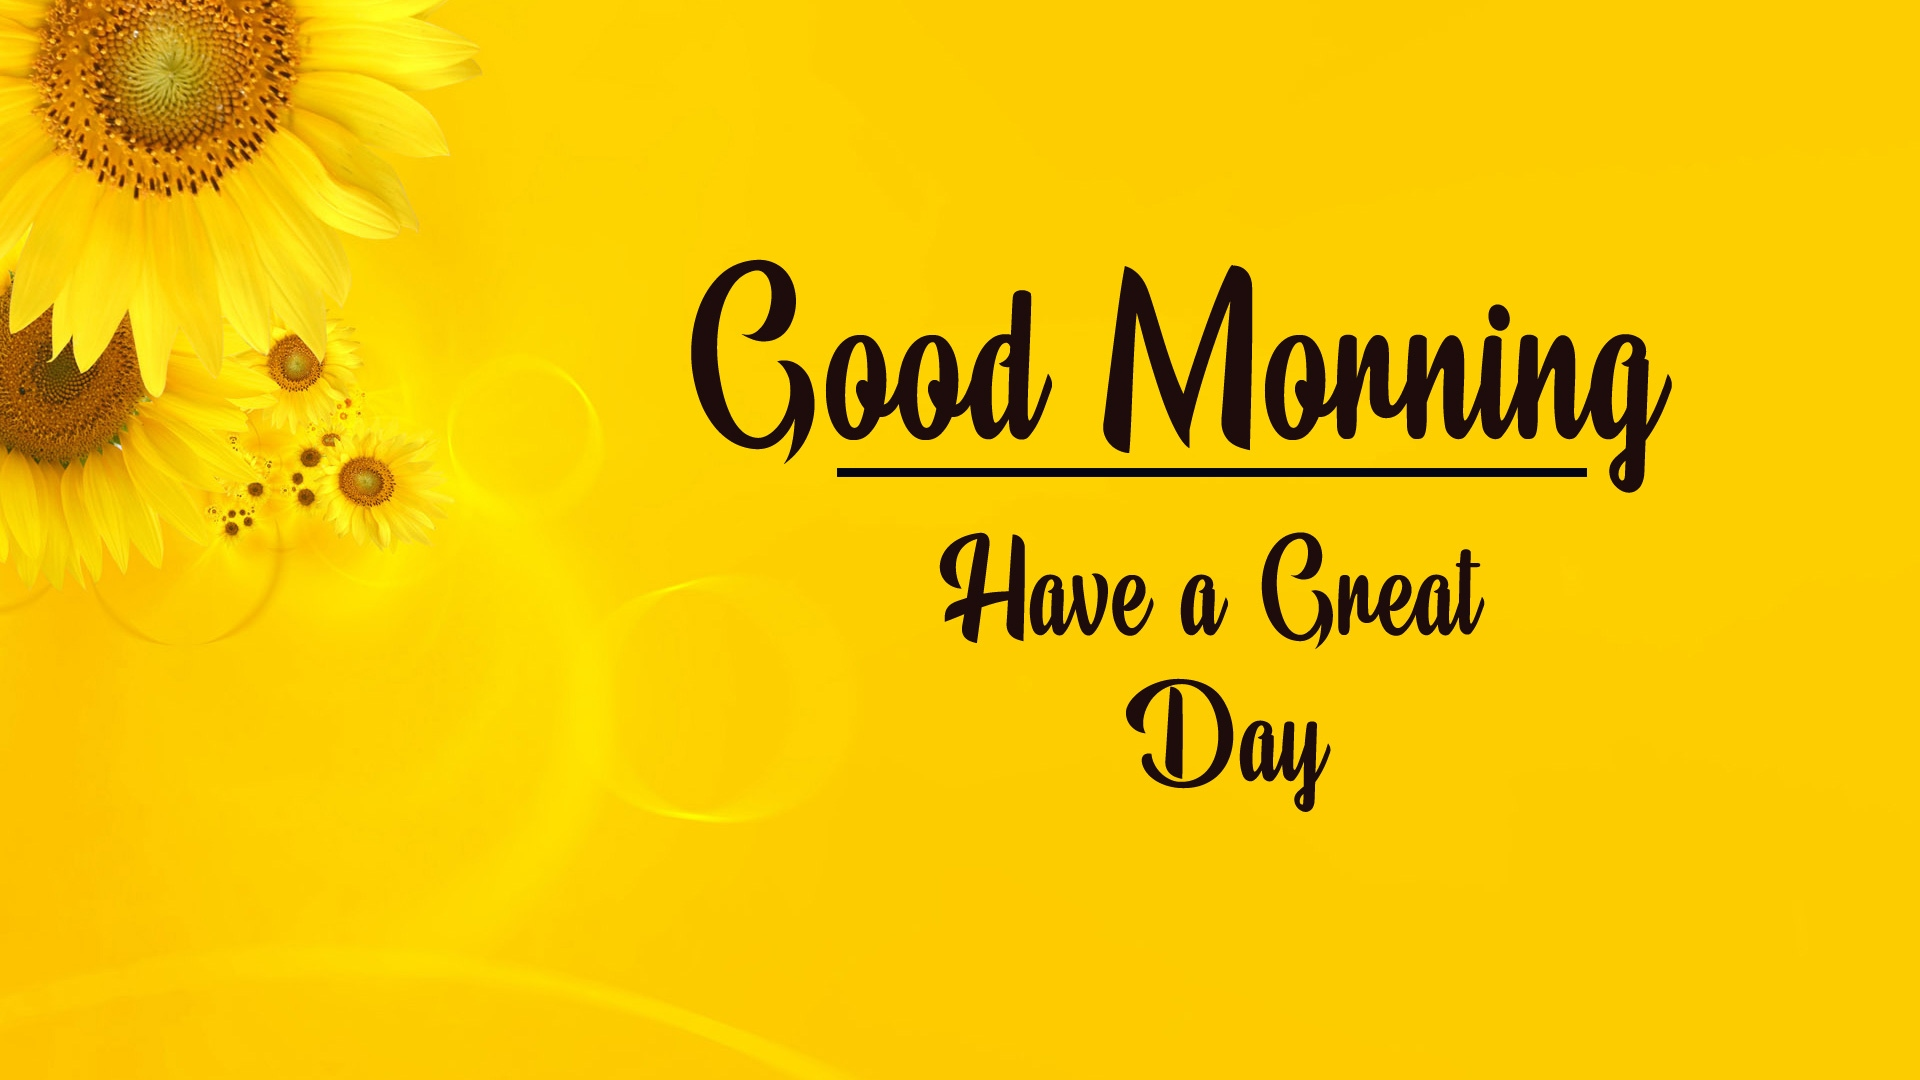 Good Morning Images for Facebook Friend 2